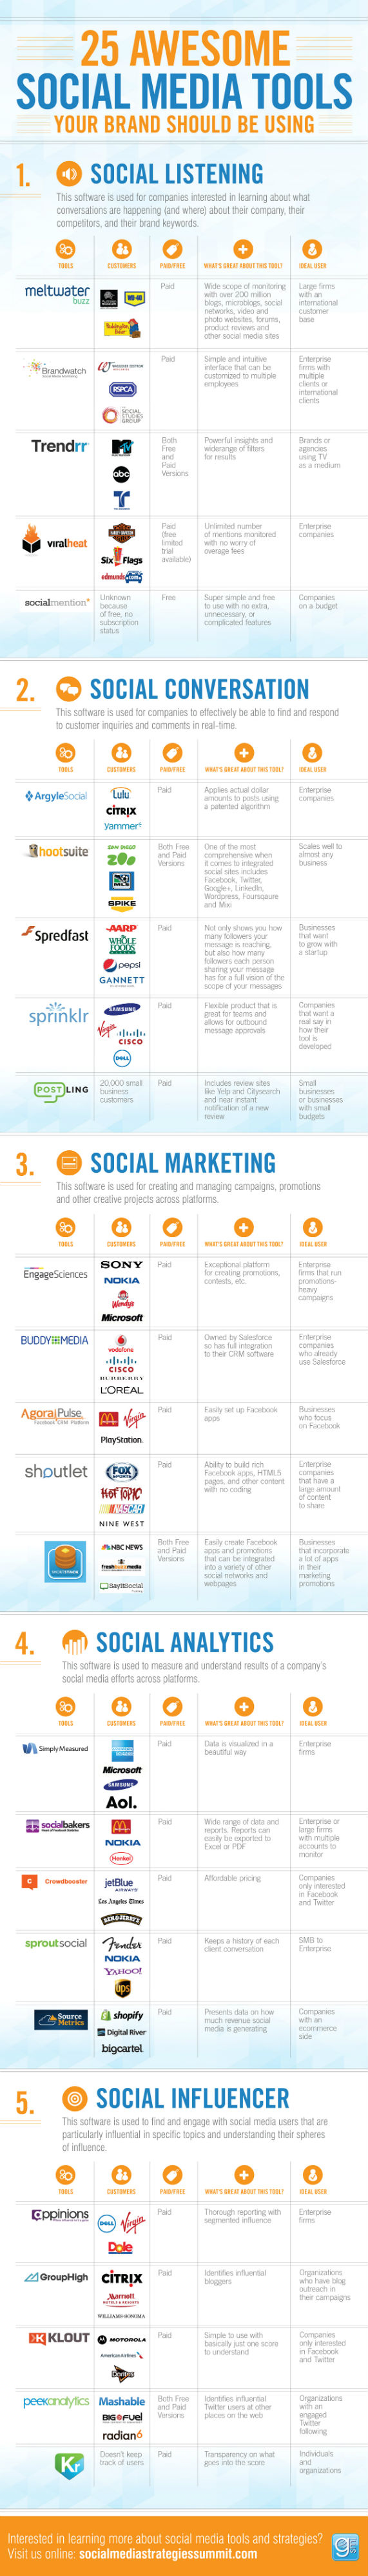 25-Social-Media-tools-Infographic-small